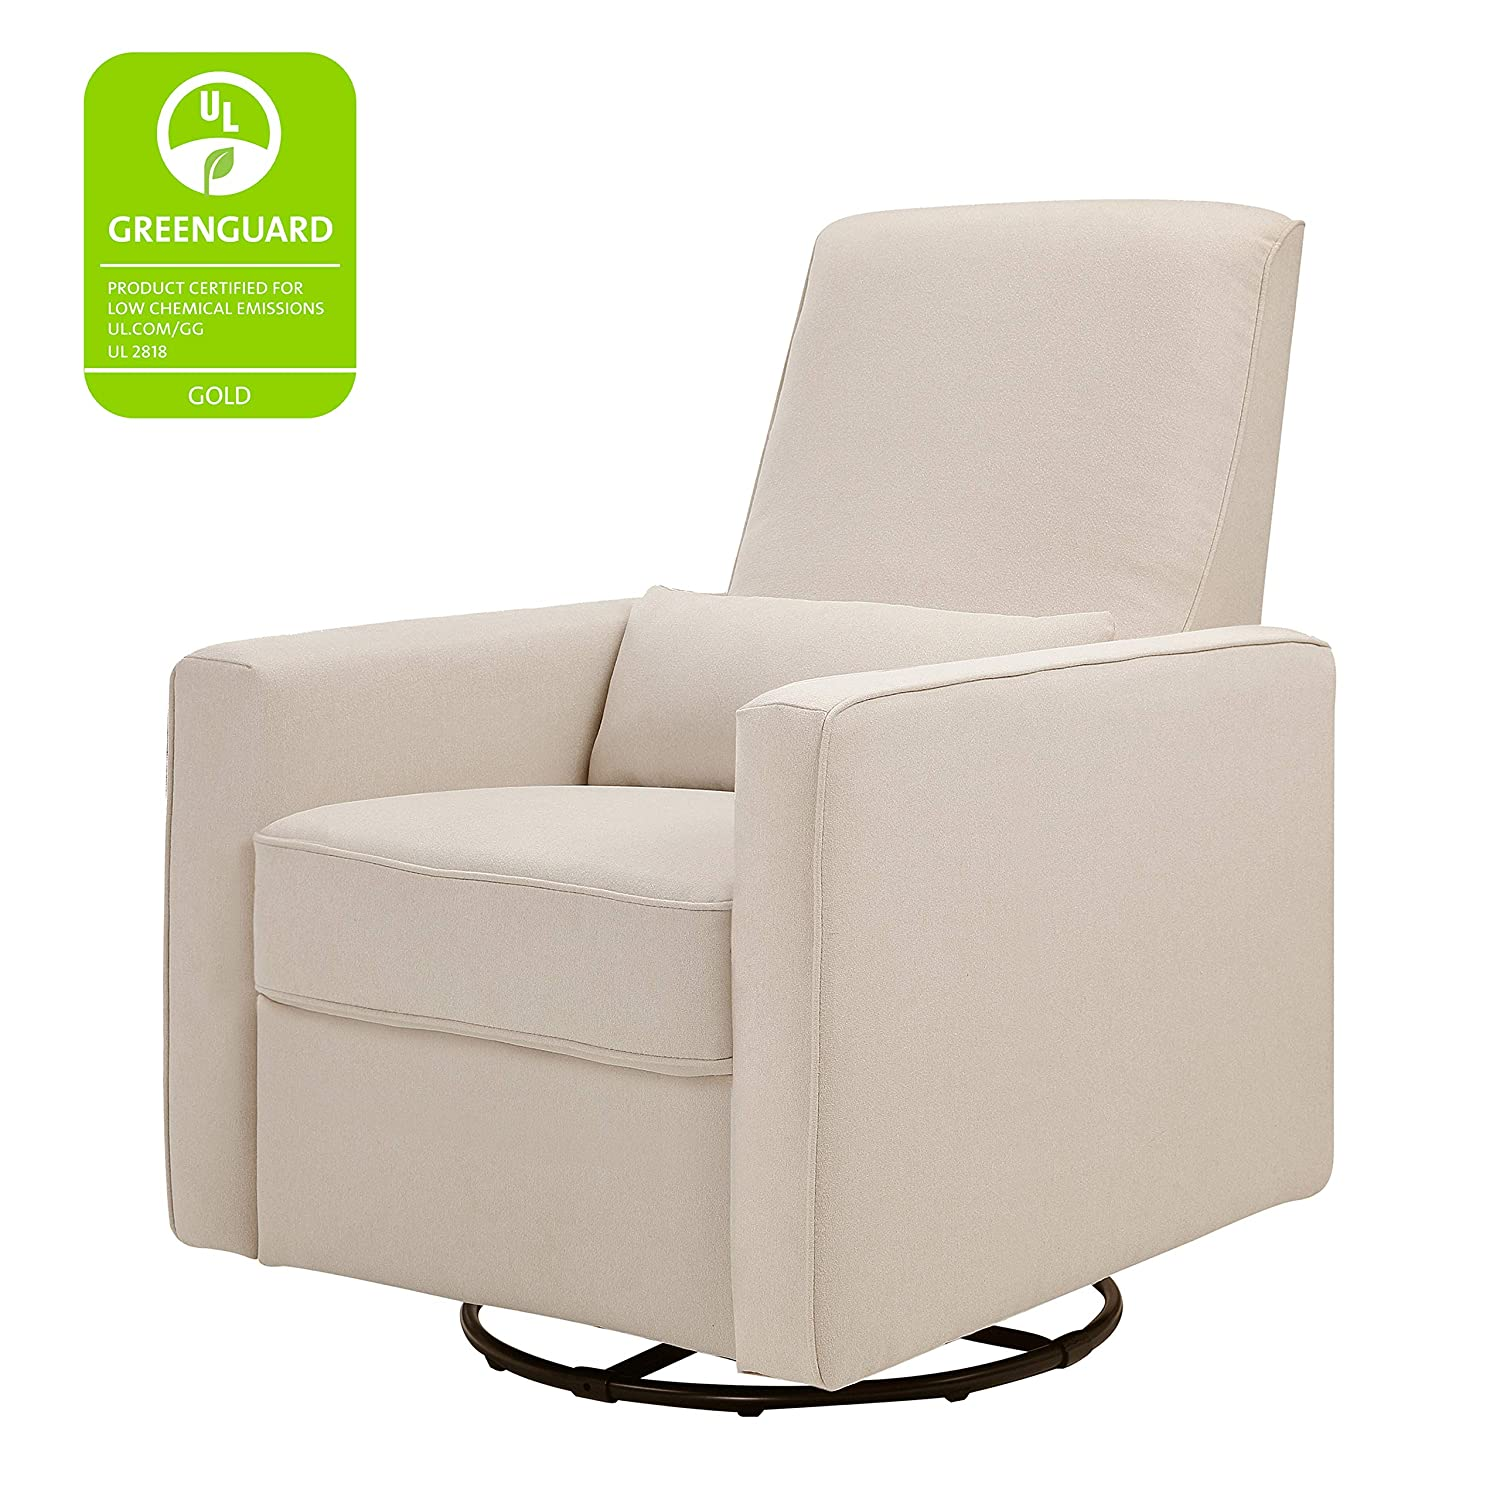 Swell Davinci Piper Upholstered Recliner And Swivel Glider Cream Forskolin Free Trial Chair Design Images Forskolin Free Trialorg